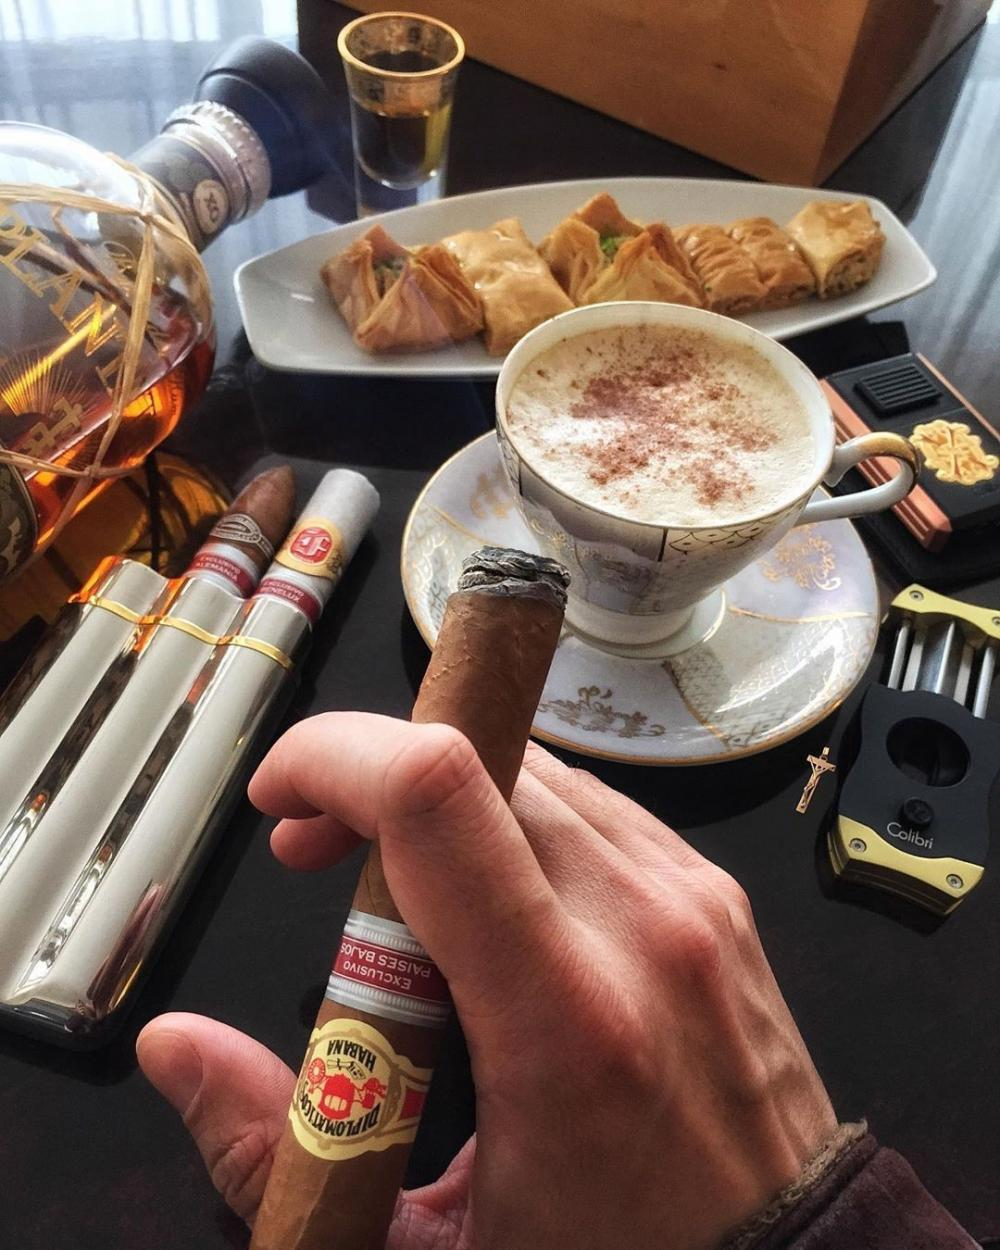 Luxurious life. A successful gentleman in an expensive suit with a cigar and a glass of whiskey or a cup of coffee is eye-catching